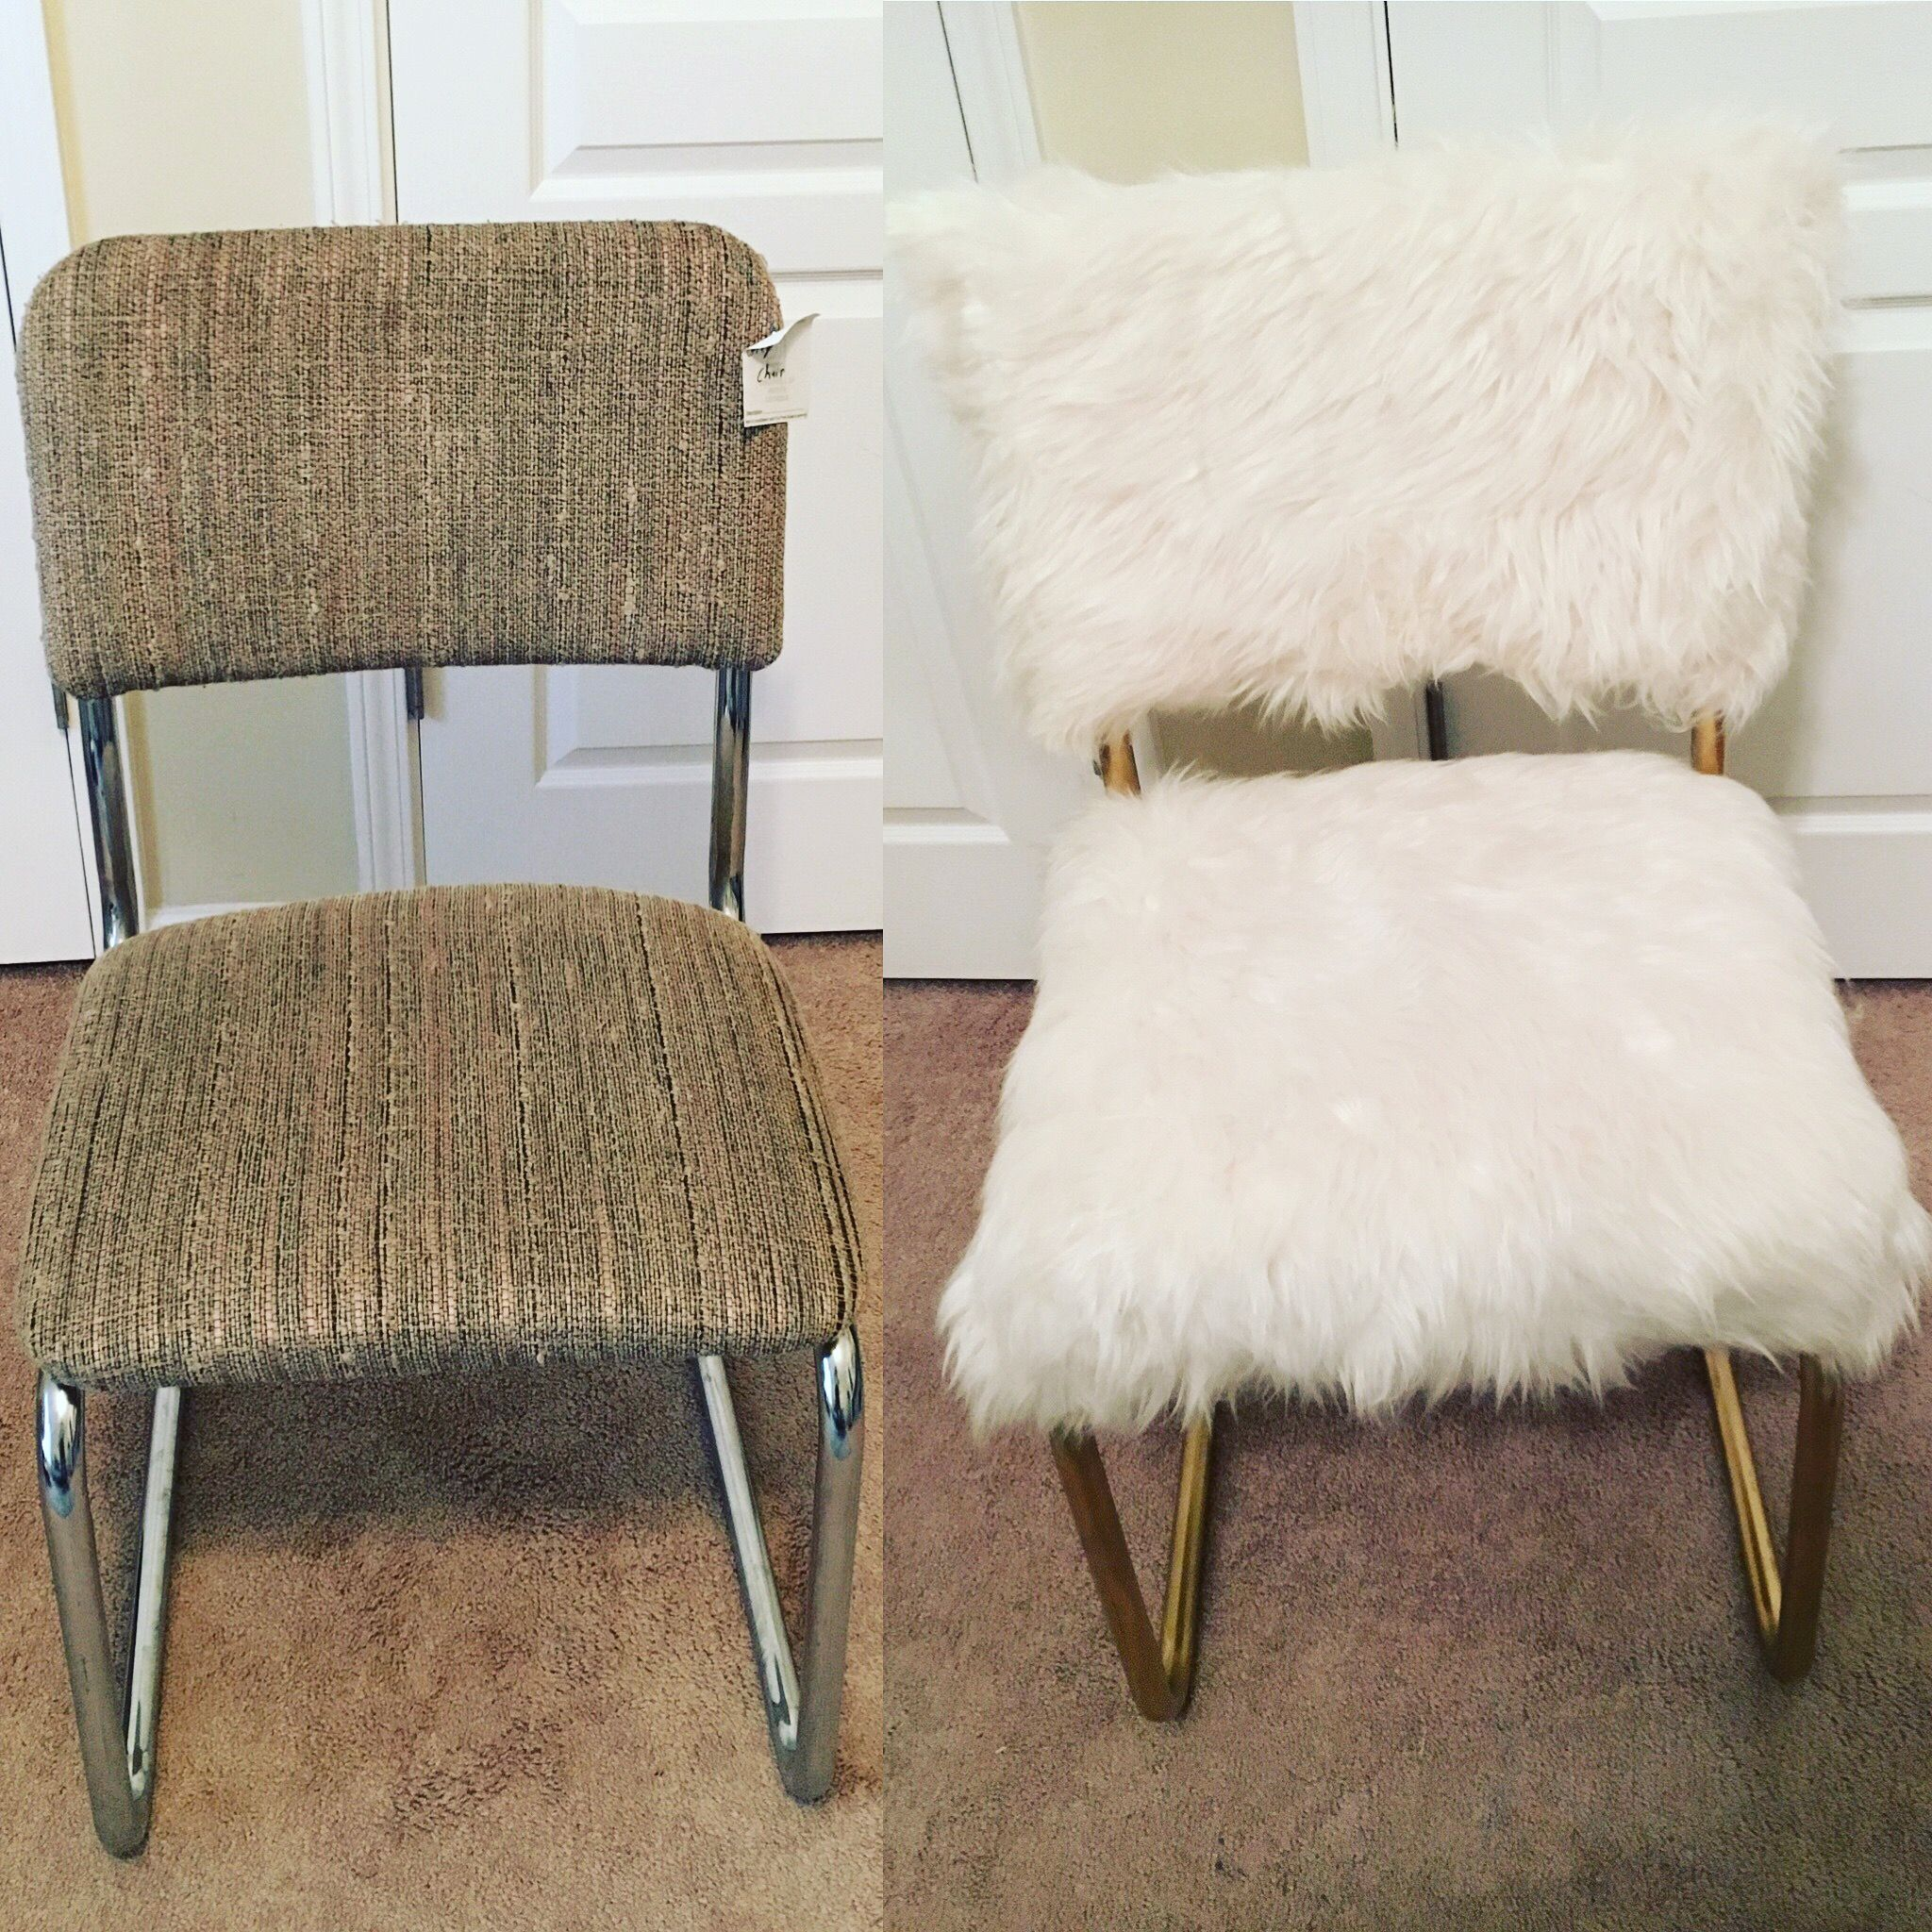 Shabby $4 Goodwill Chair Transformed Into A Chic White And